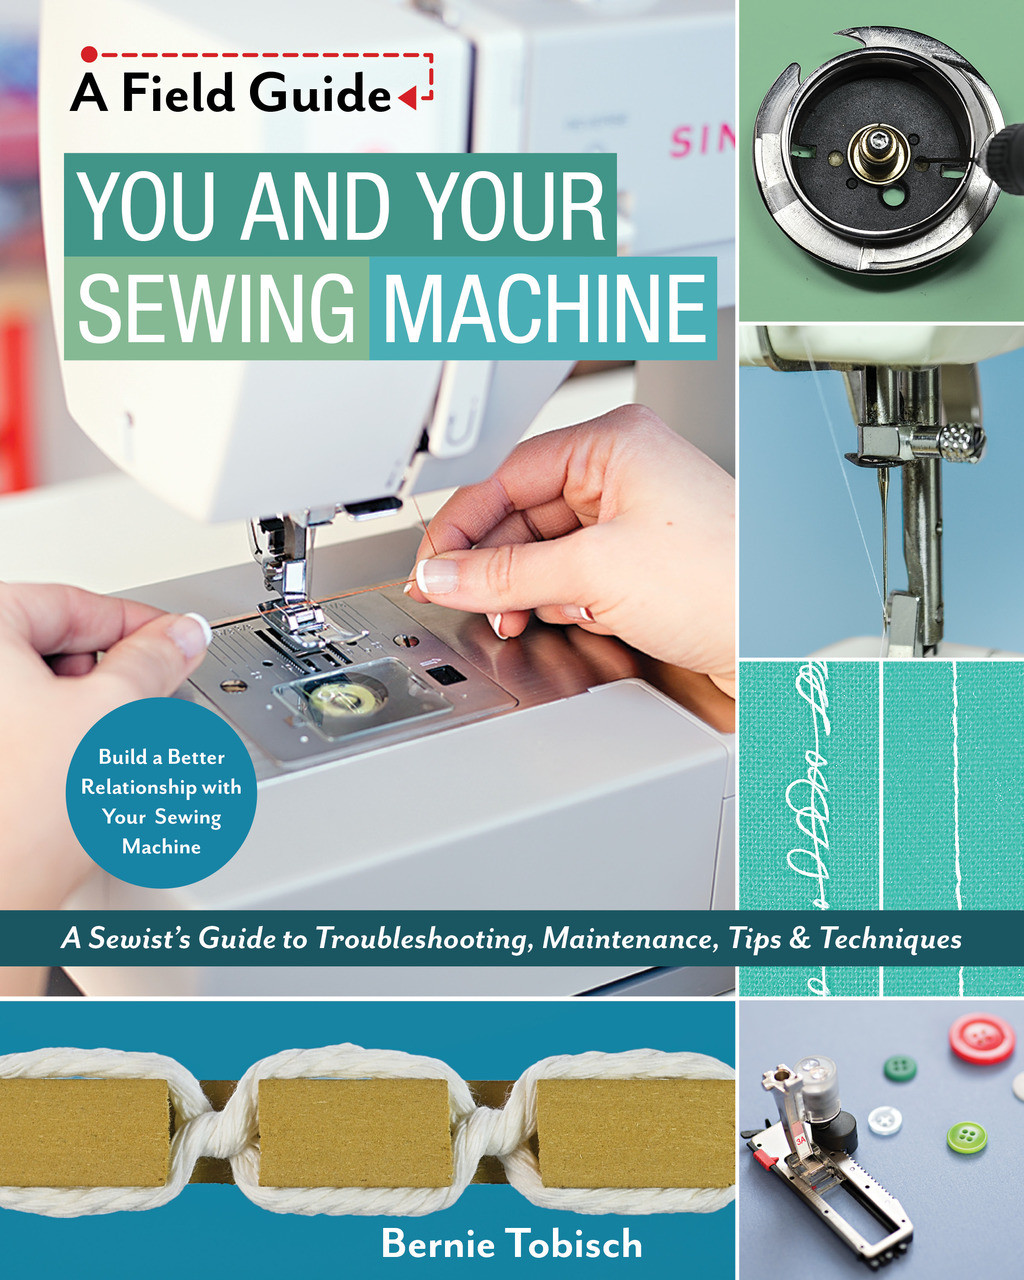 From the sewing machine whisperer comes this in-depth, visual guide to how a sewing machine works, how to keep it in good working order, and how to solve common problems.Perfect for sewists and quilters of all levels, this friendly approach to learning about and troubleshooting YOUR sewing machine gives you the tools you need to sew and quilt with less frustration and better results!